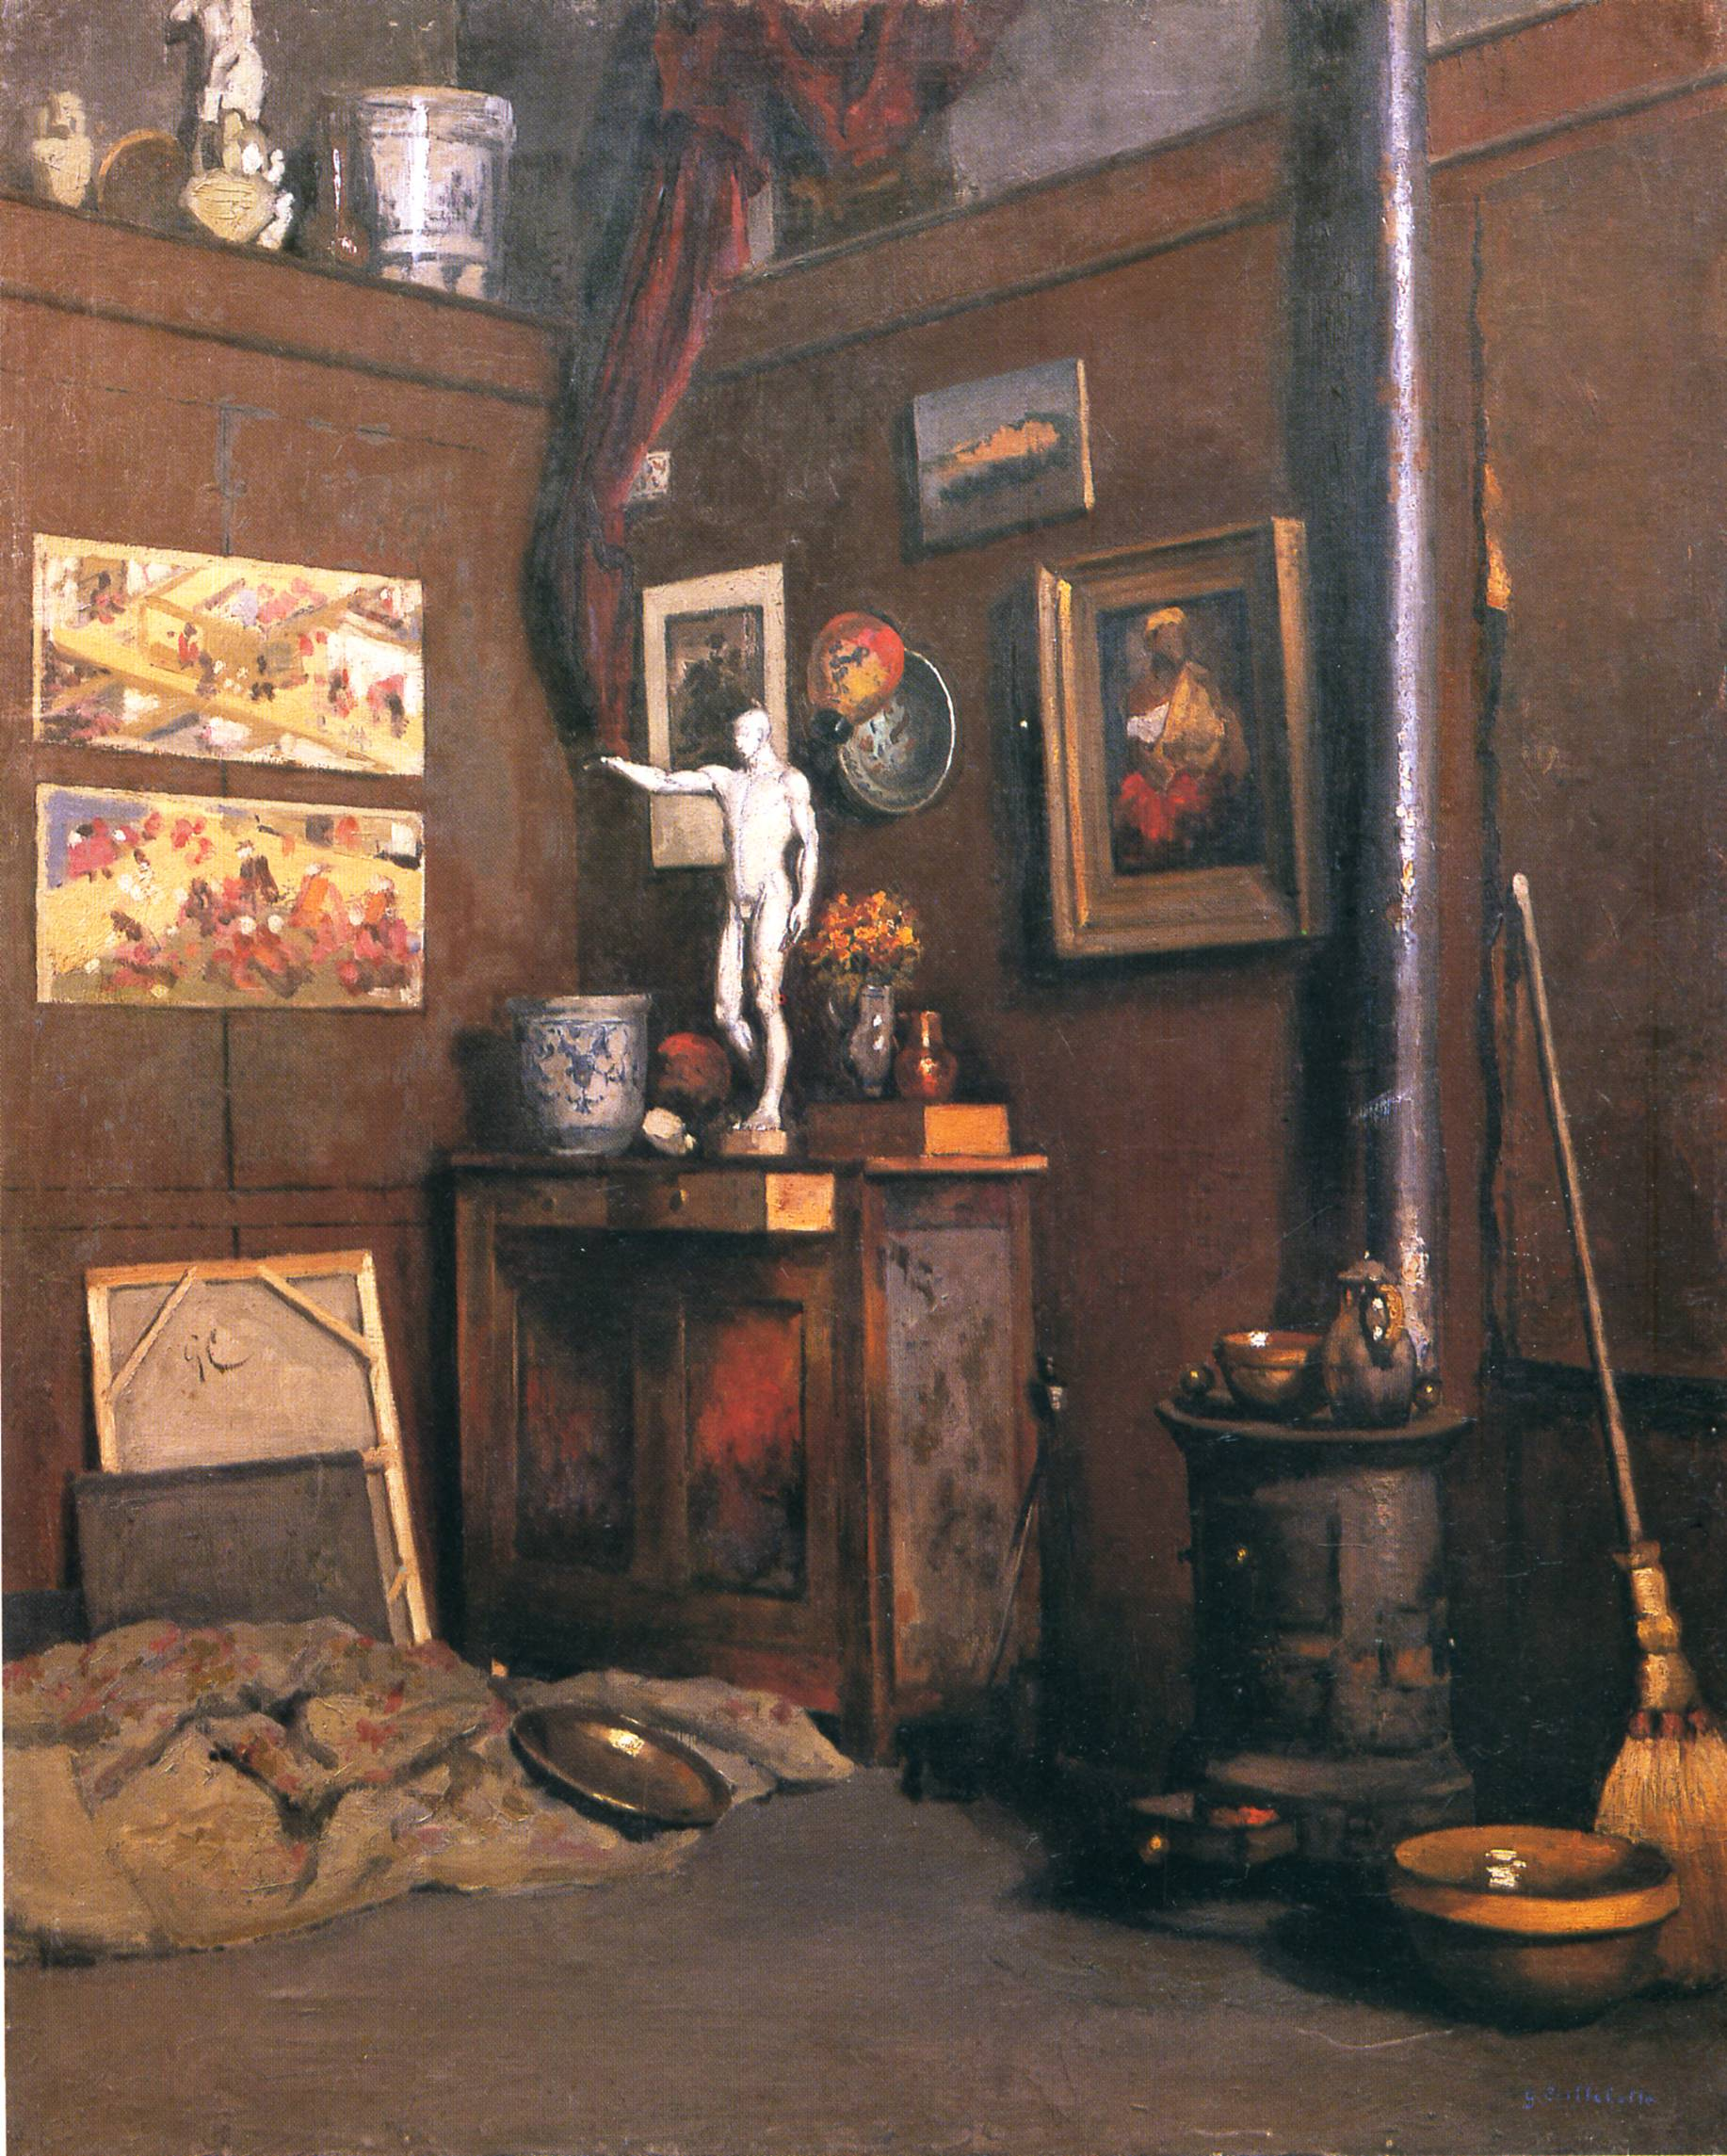 Interior of a studio gustave caillebotte encyclopedia of visual arts - Interior images ...